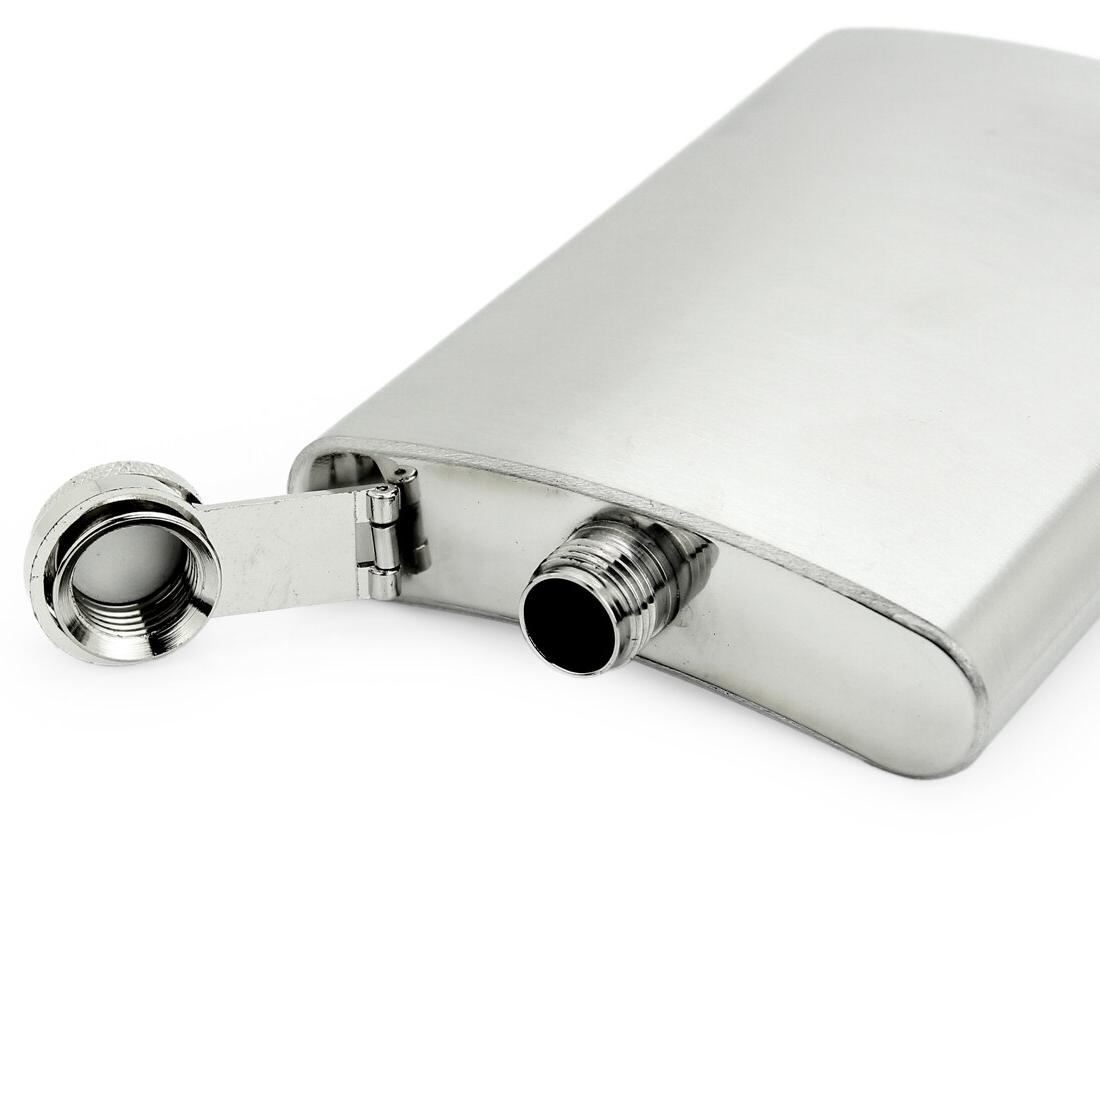 Portable <font><b>oz</b></font> Stainless Steel Wine Pot Liquor Whiskey Cap Flask for